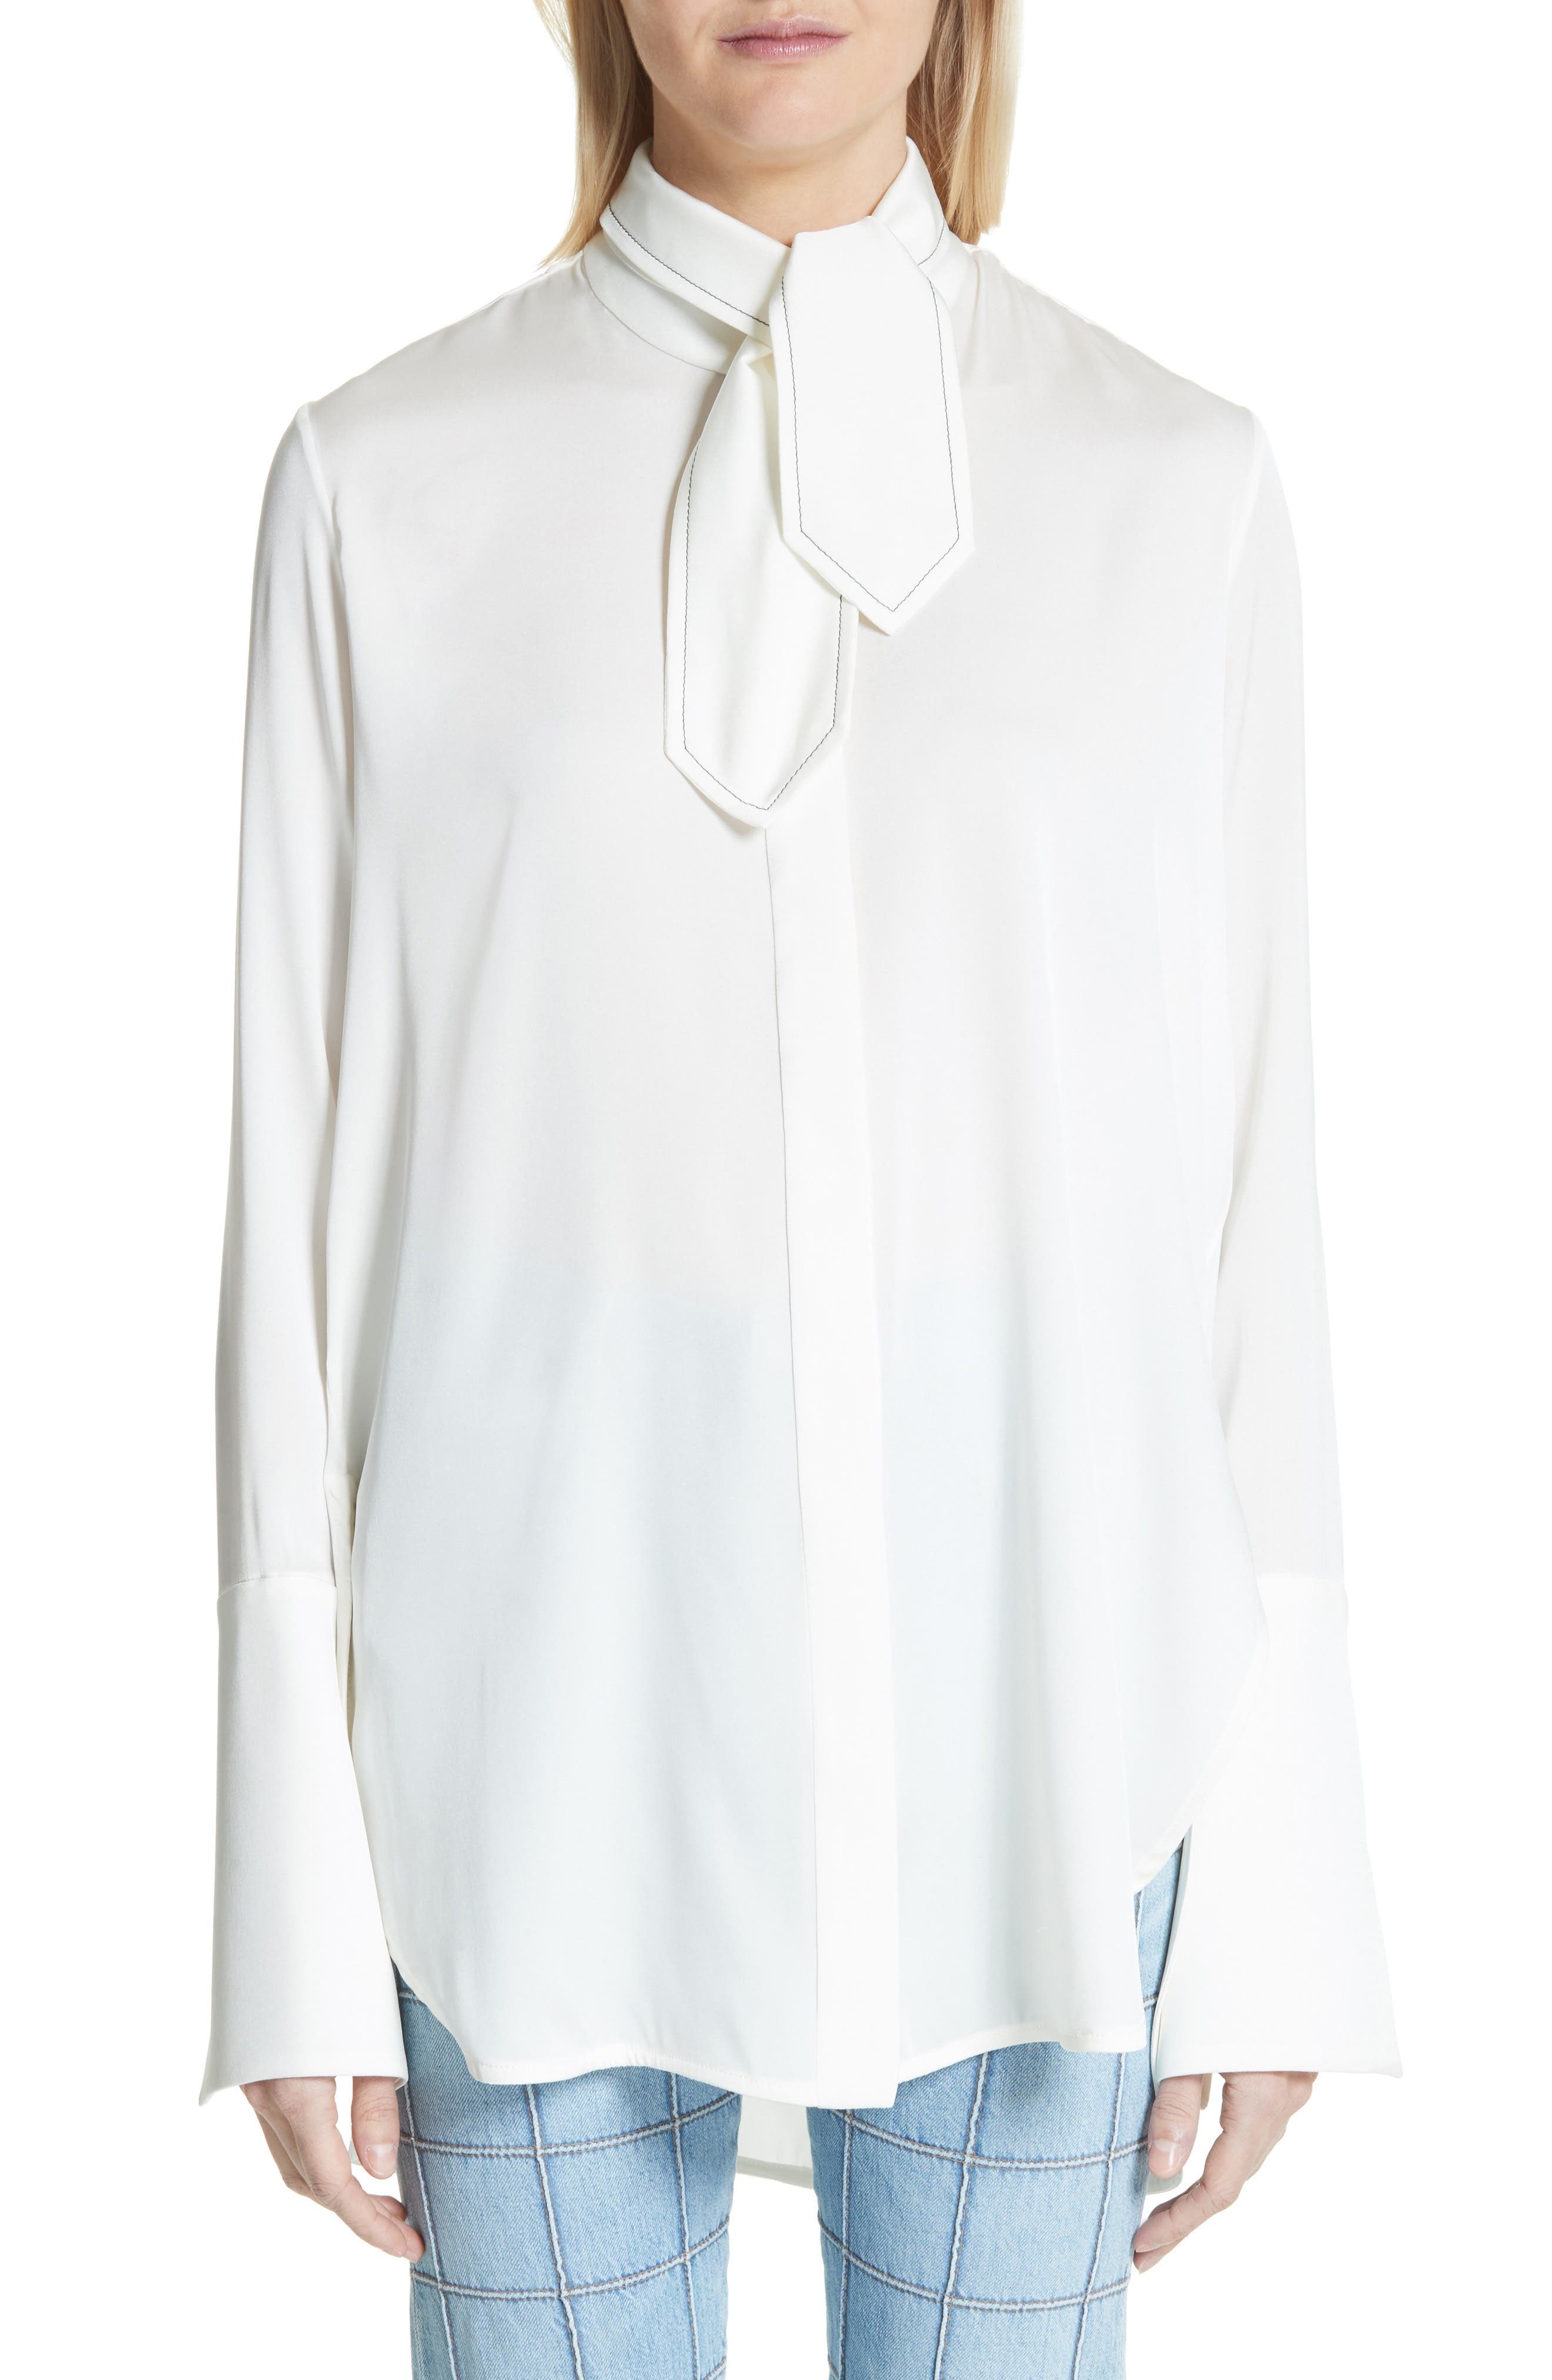 Ride Lonesome Tie Neck Blouse,                             Main thumbnail 1, color,                             Ivory